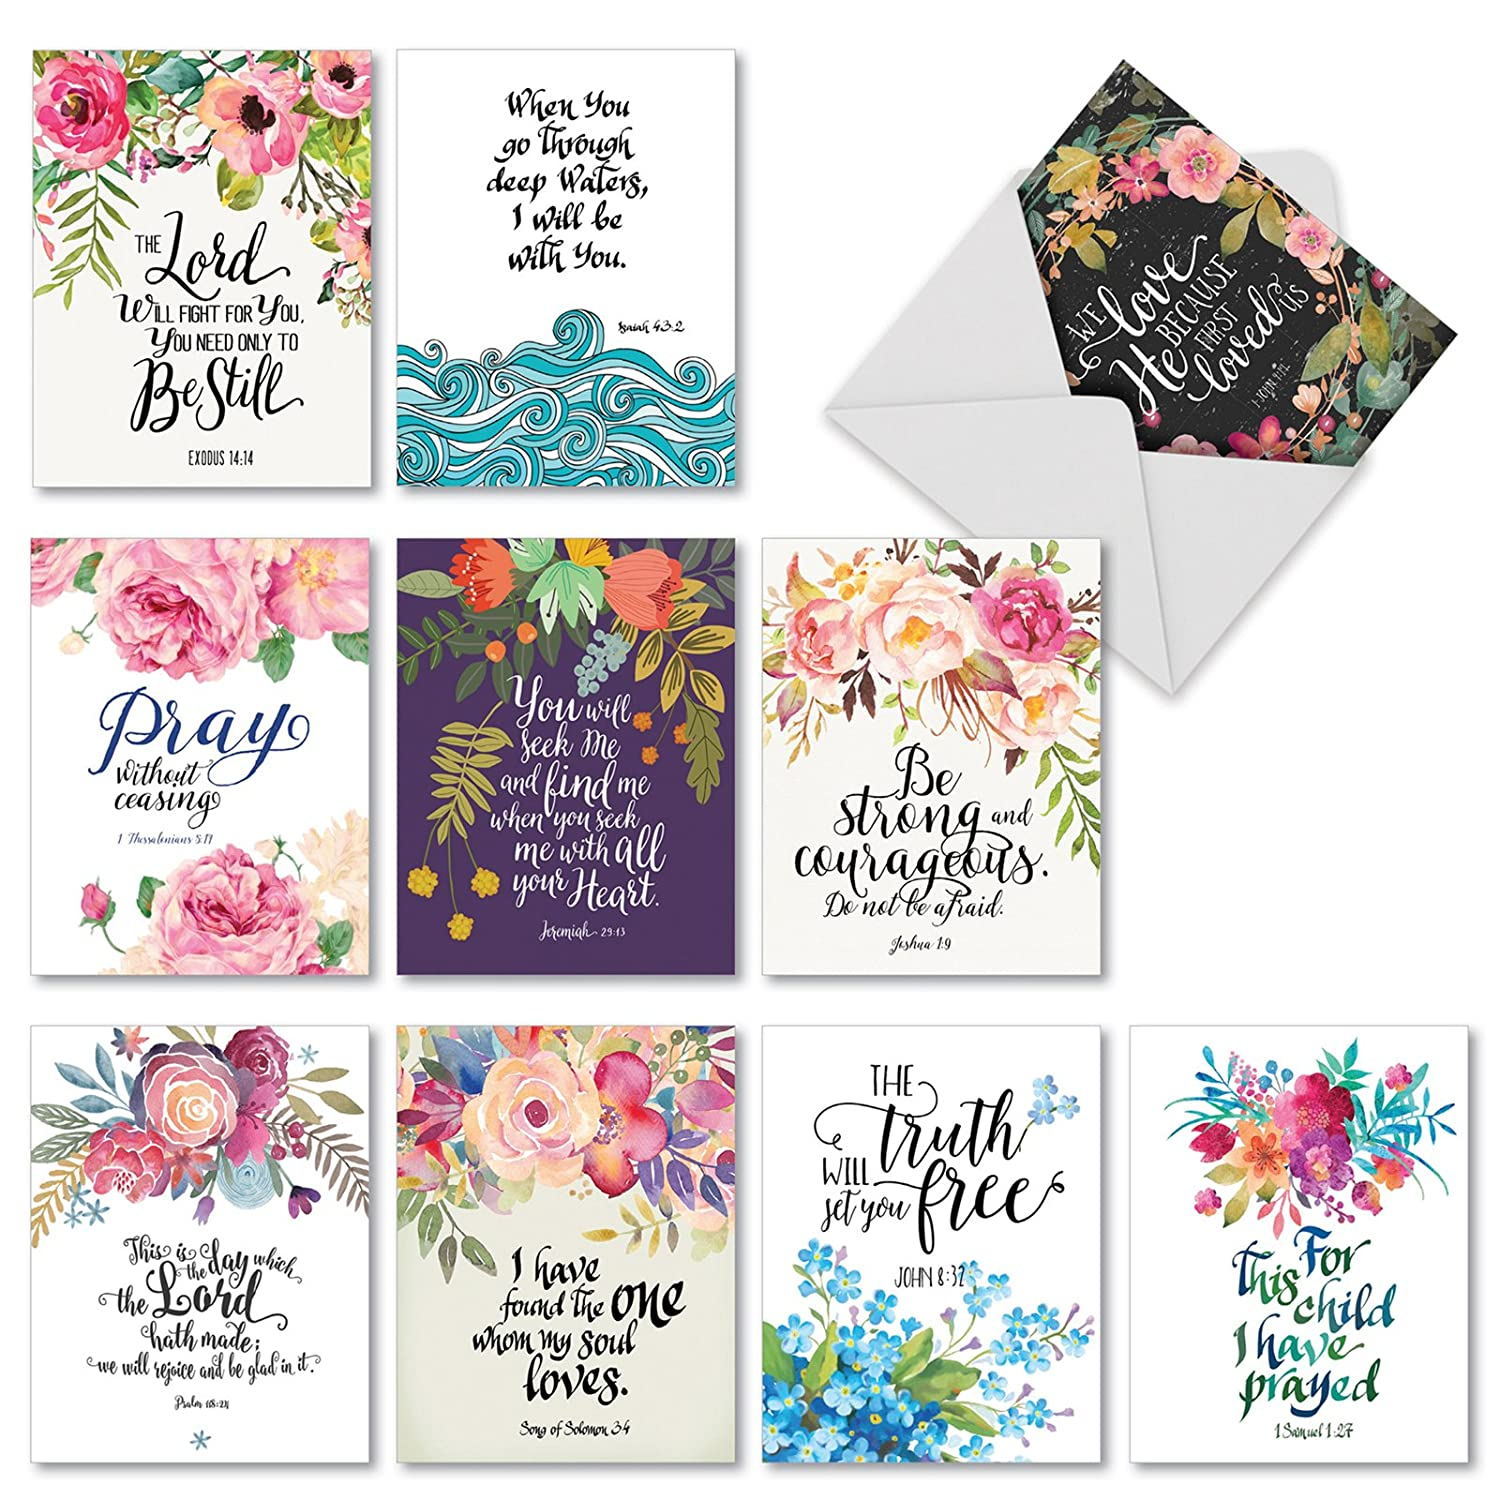 10 Pack of Inspirational Bible Verse Cards - Religious, Inspiring  Motivational Quote Greetings - Blank Note Card for Christmas, Wedding, and  Holidays